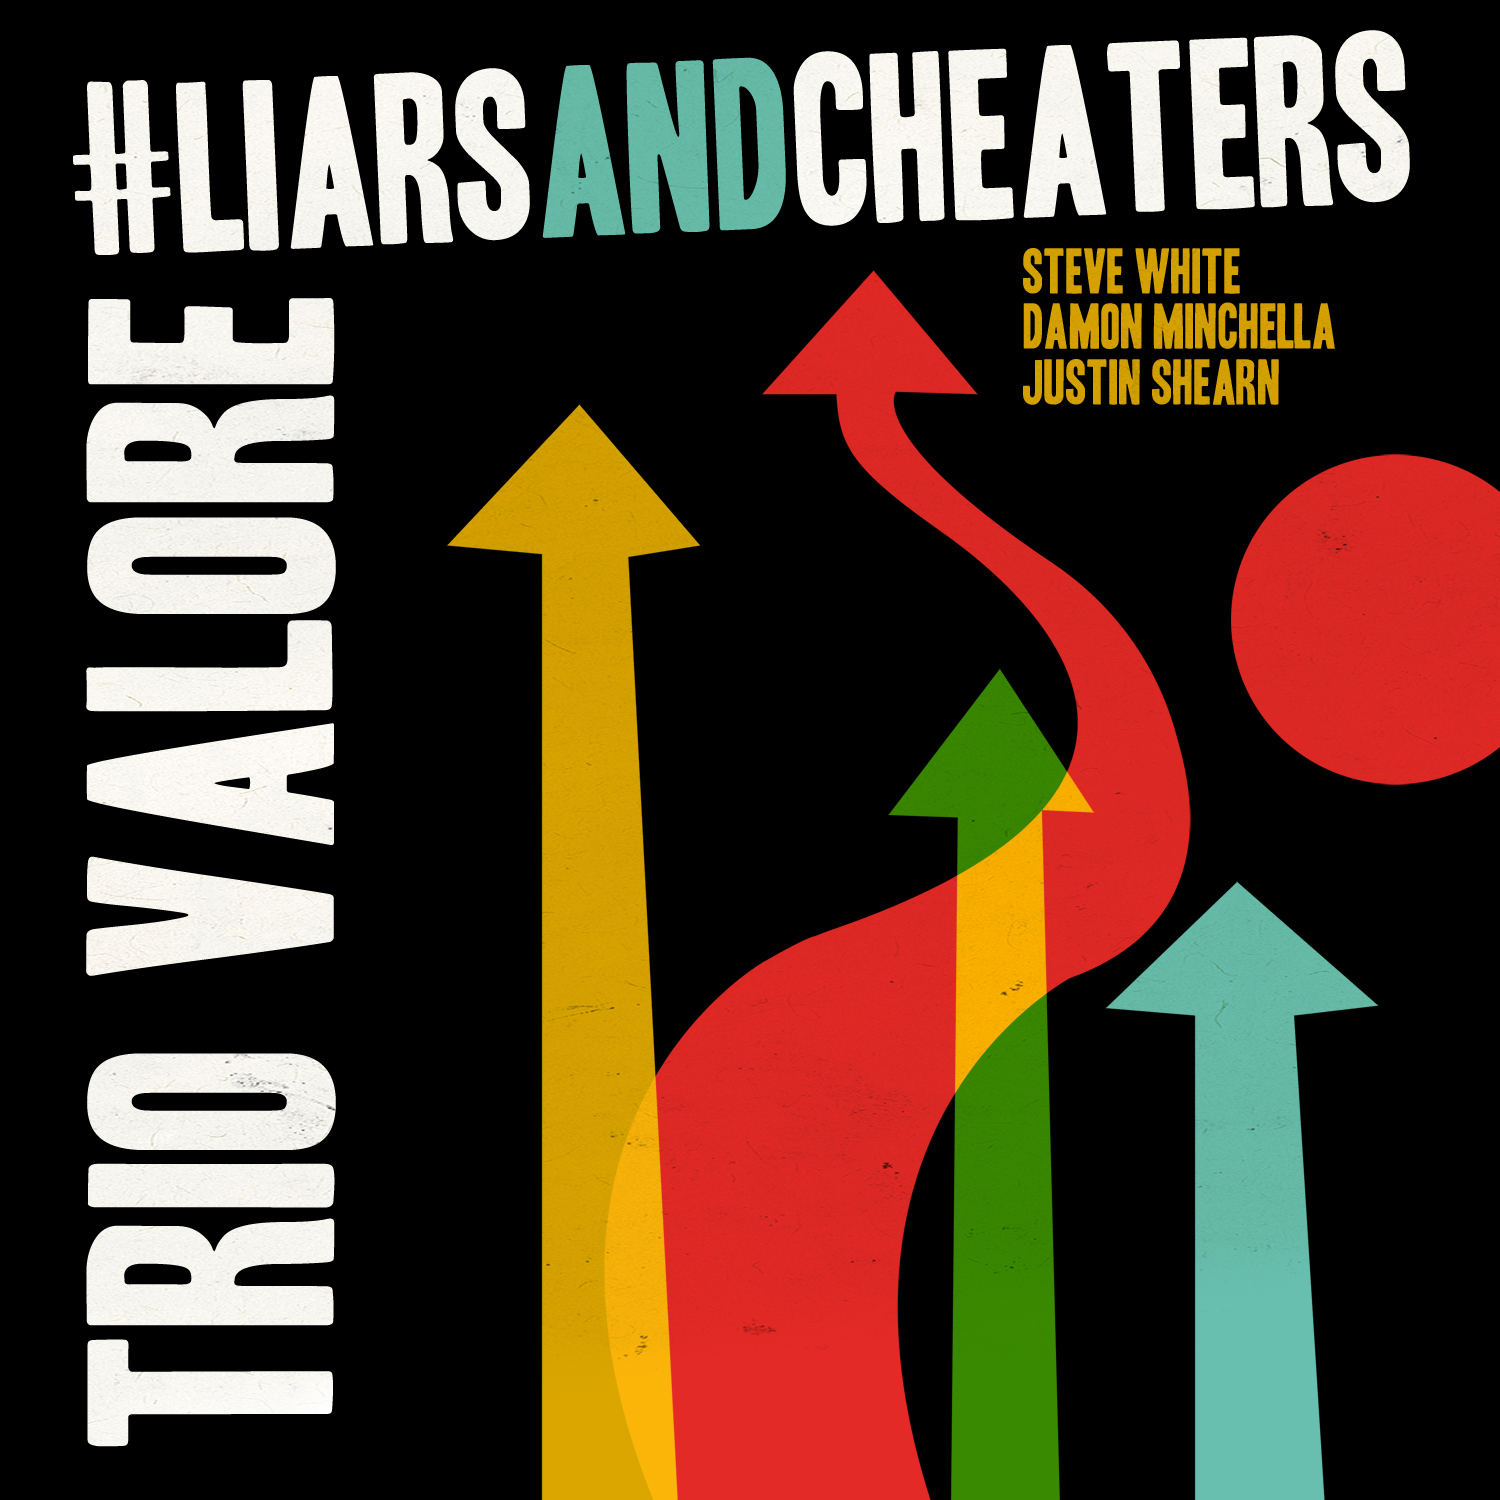 LiarsAndCheaters_cover